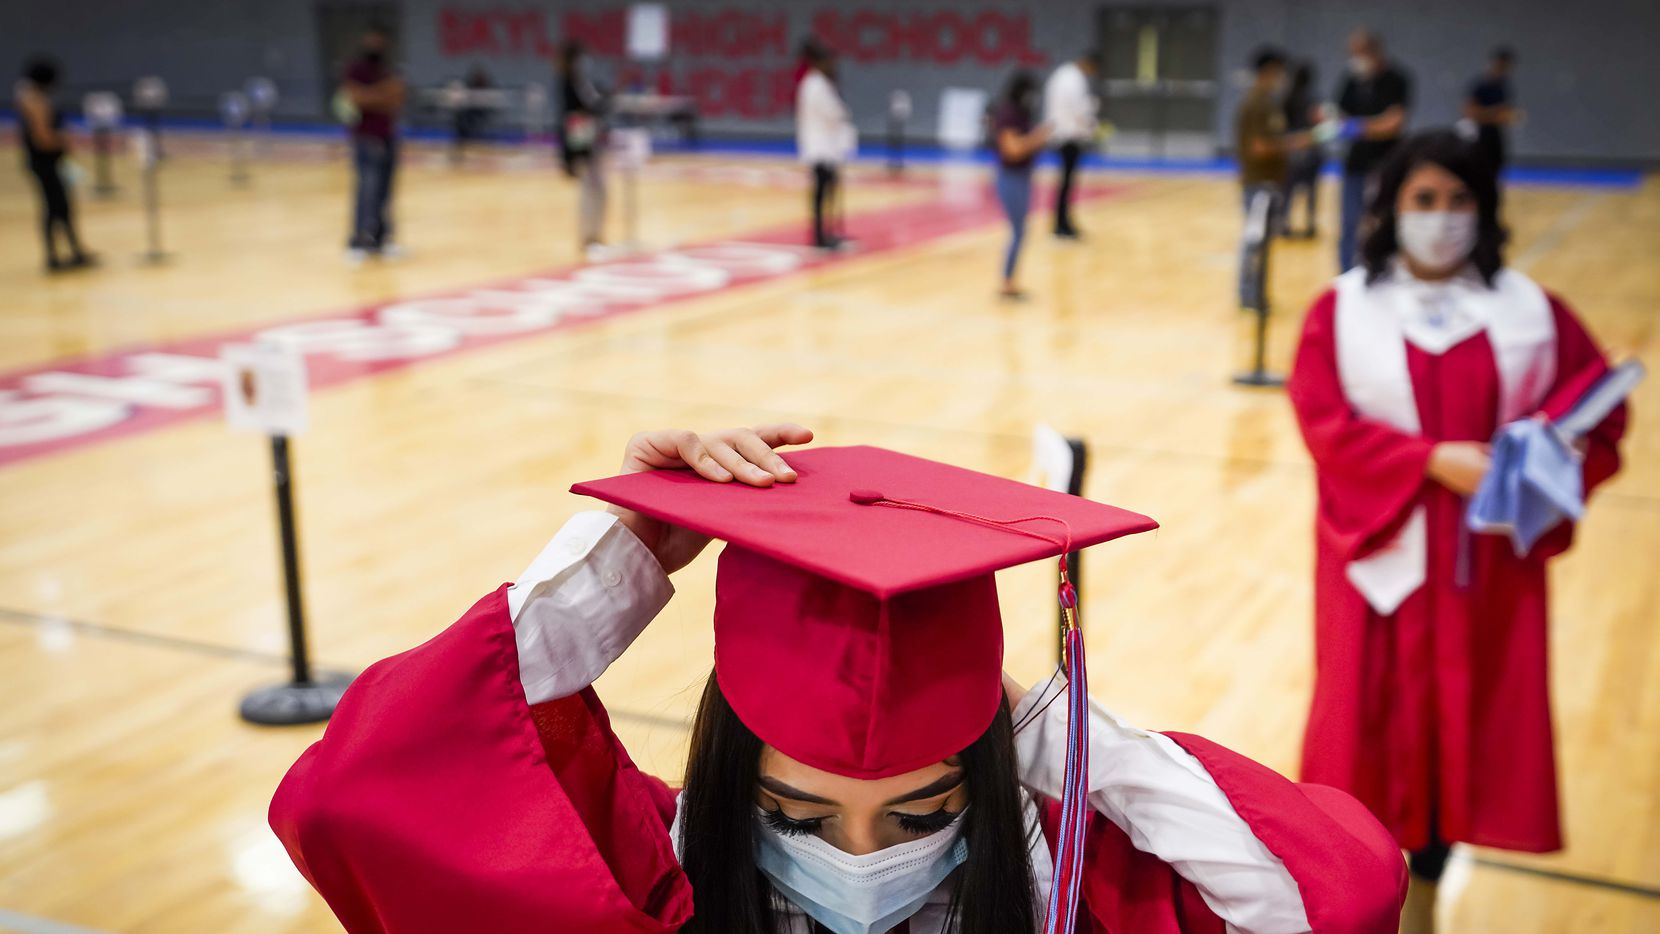 As college enrollment is on the decline, Future Focused Texas provides resources for school counselors to help their students graduate and enroll in college.